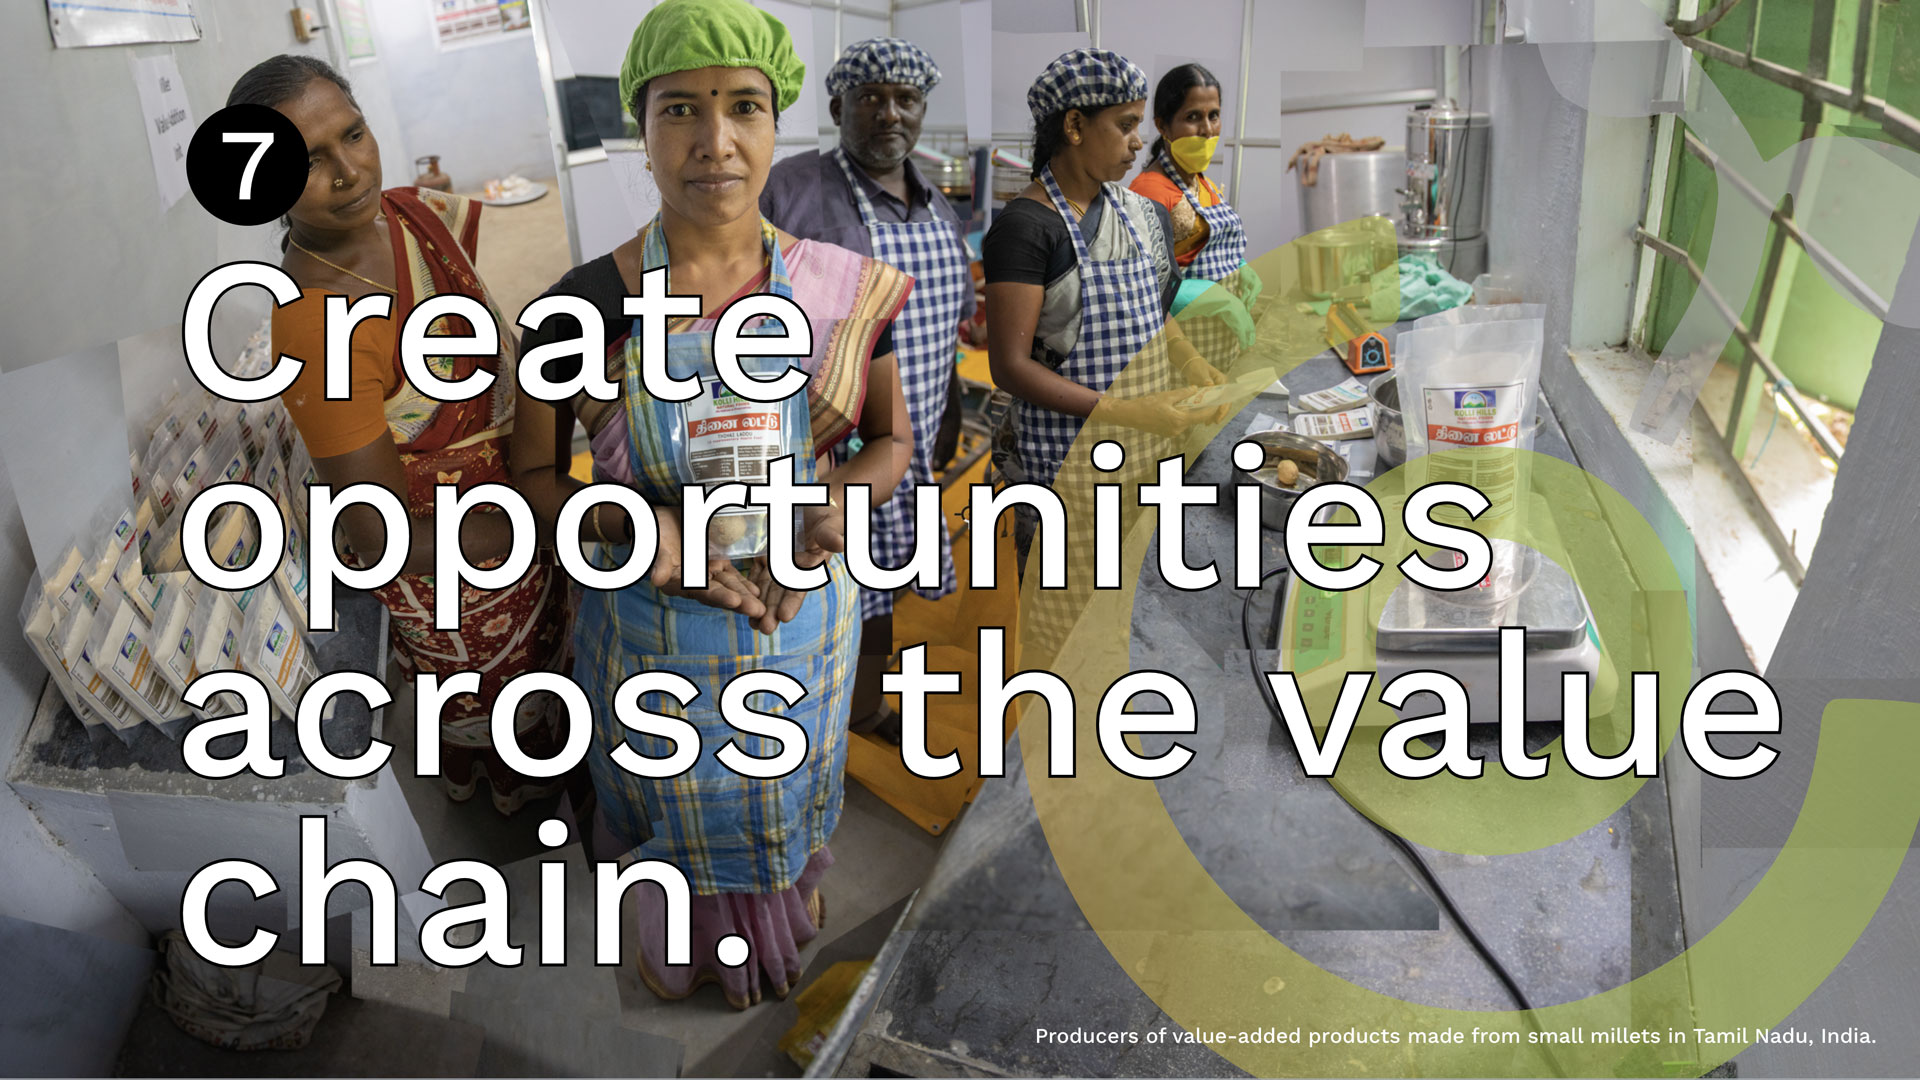 REAWAKENED7_Create-opportunities-across-the-value-chain